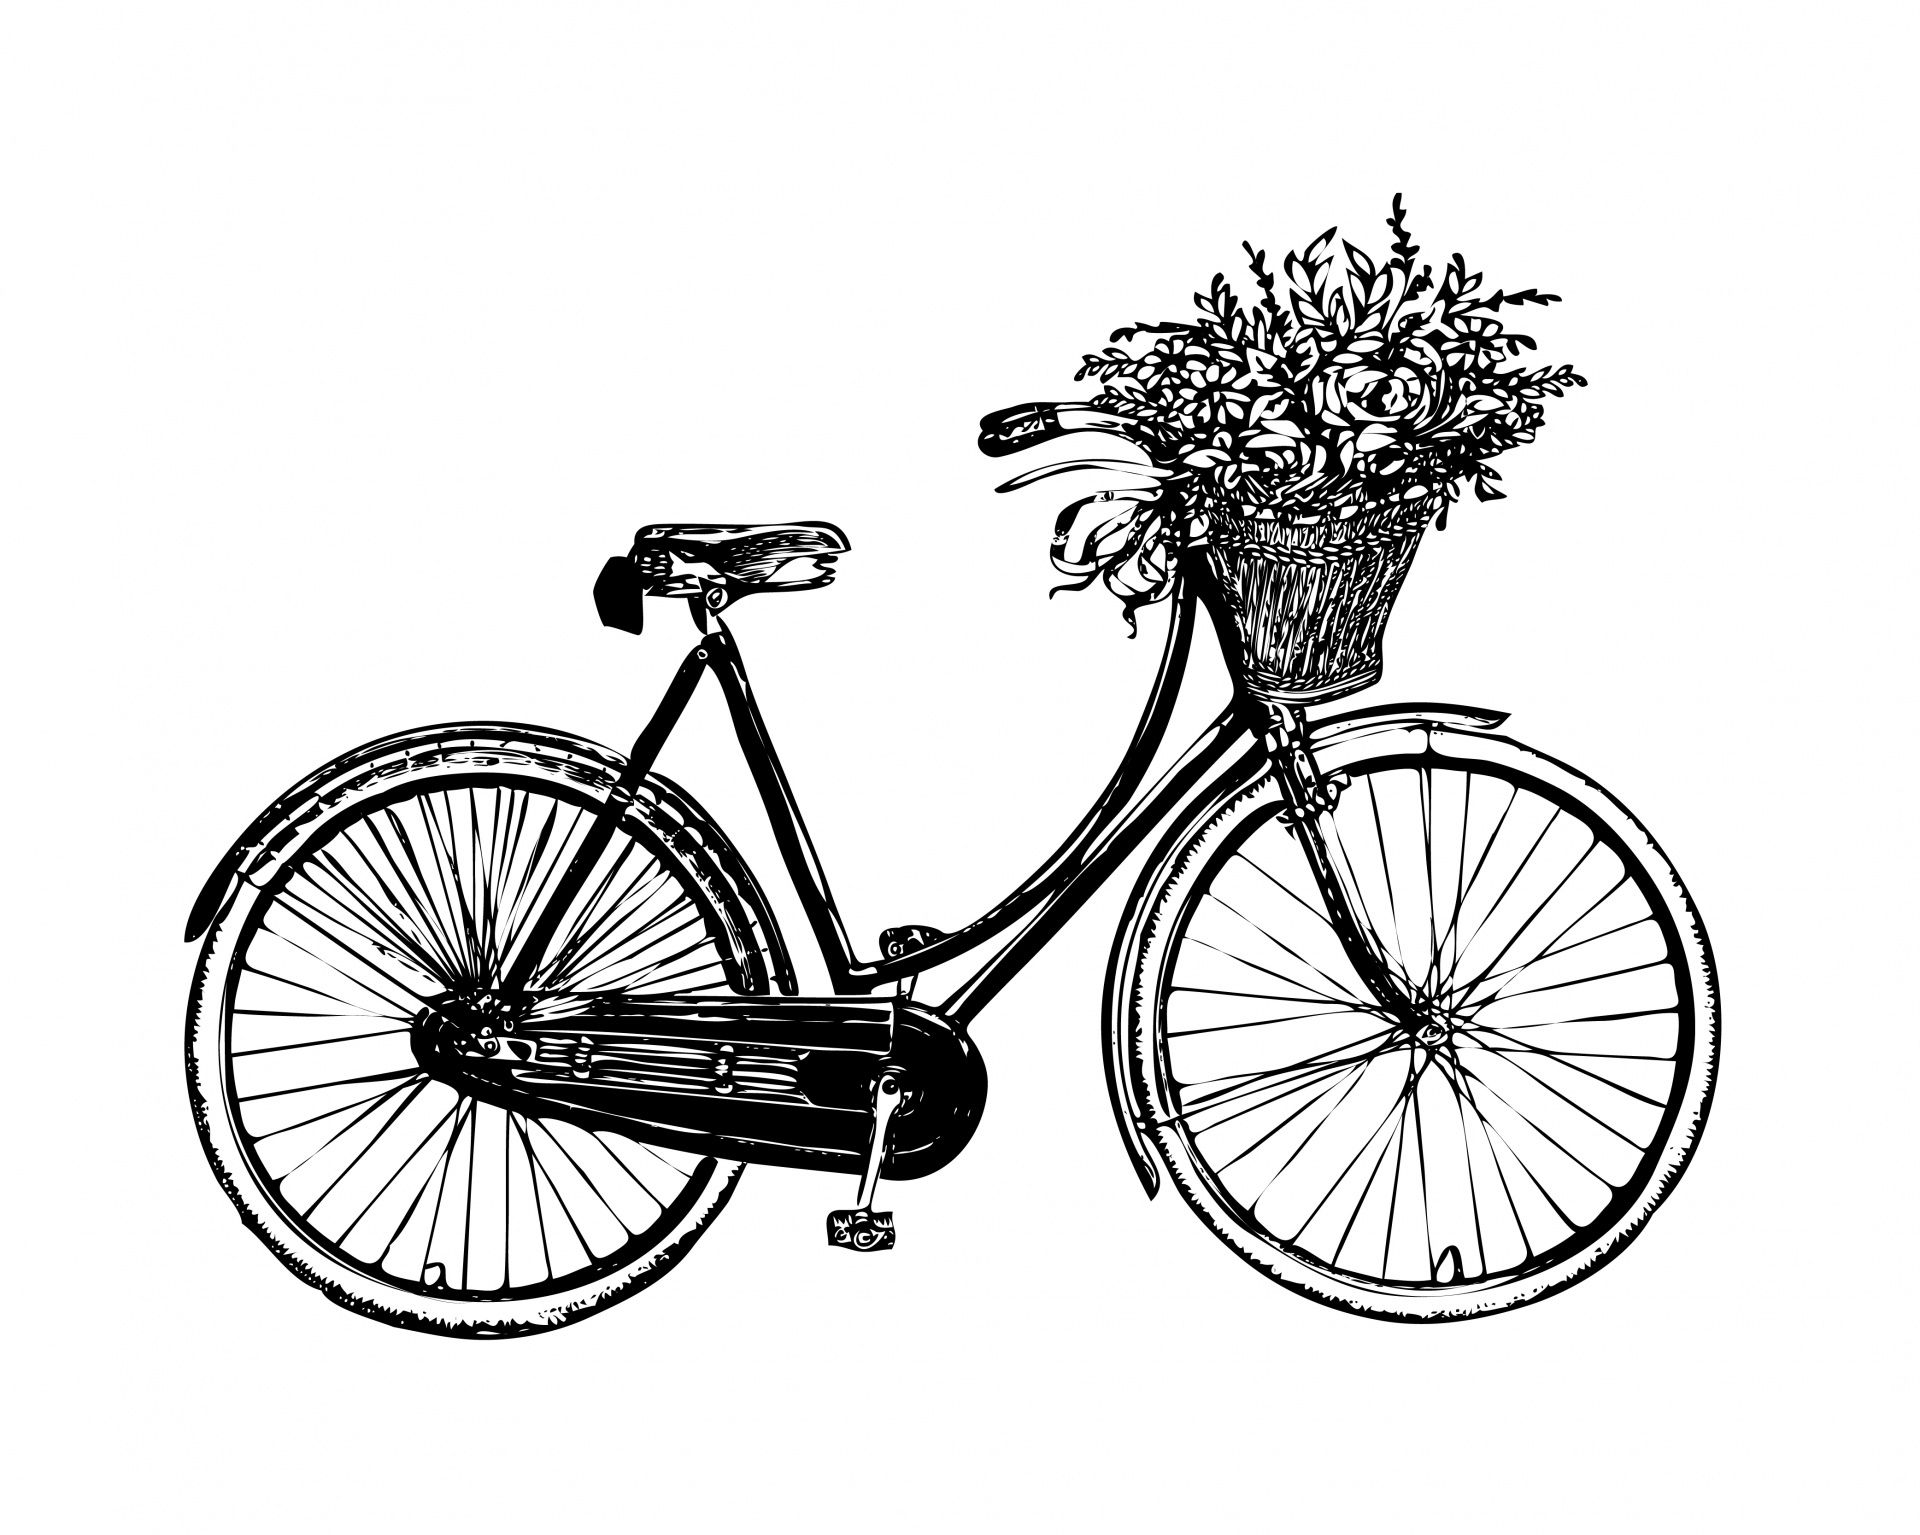 Vintage clipart public domain jpg free download Bicycle Flowers Vintage Clipart Free Stock Photo - Public ... jpg free download